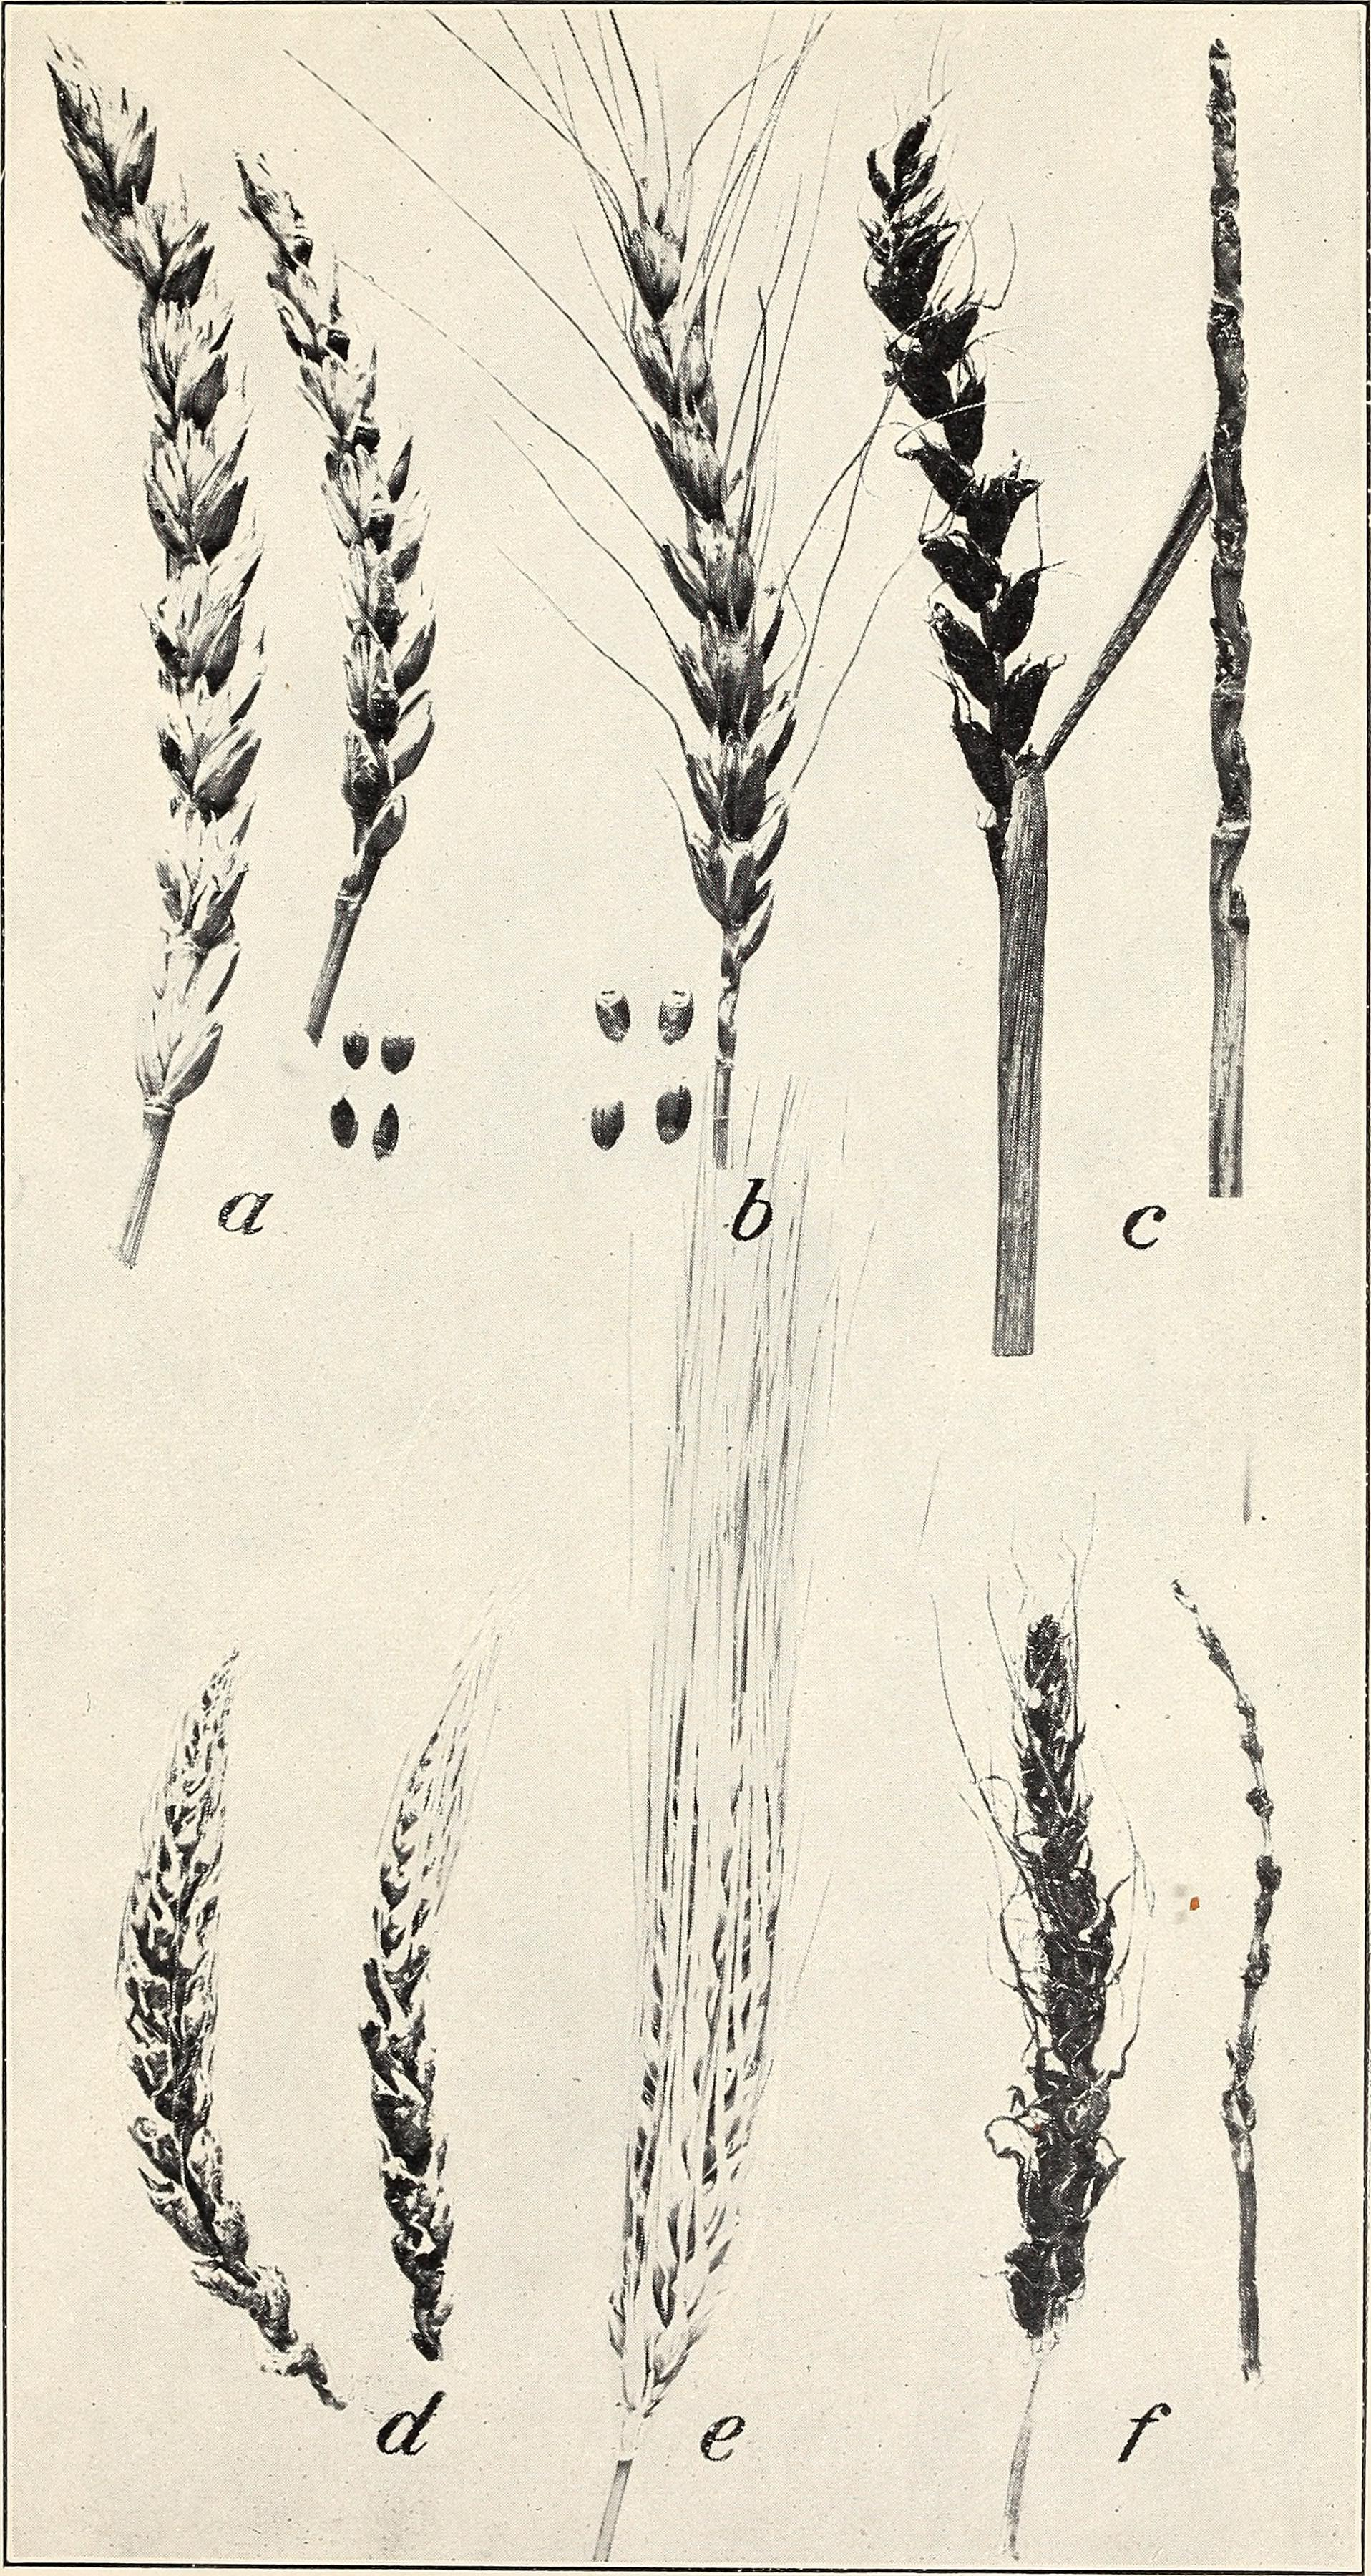 File:The loose smuts of barley and wheat (1909) (14587298687) jpg